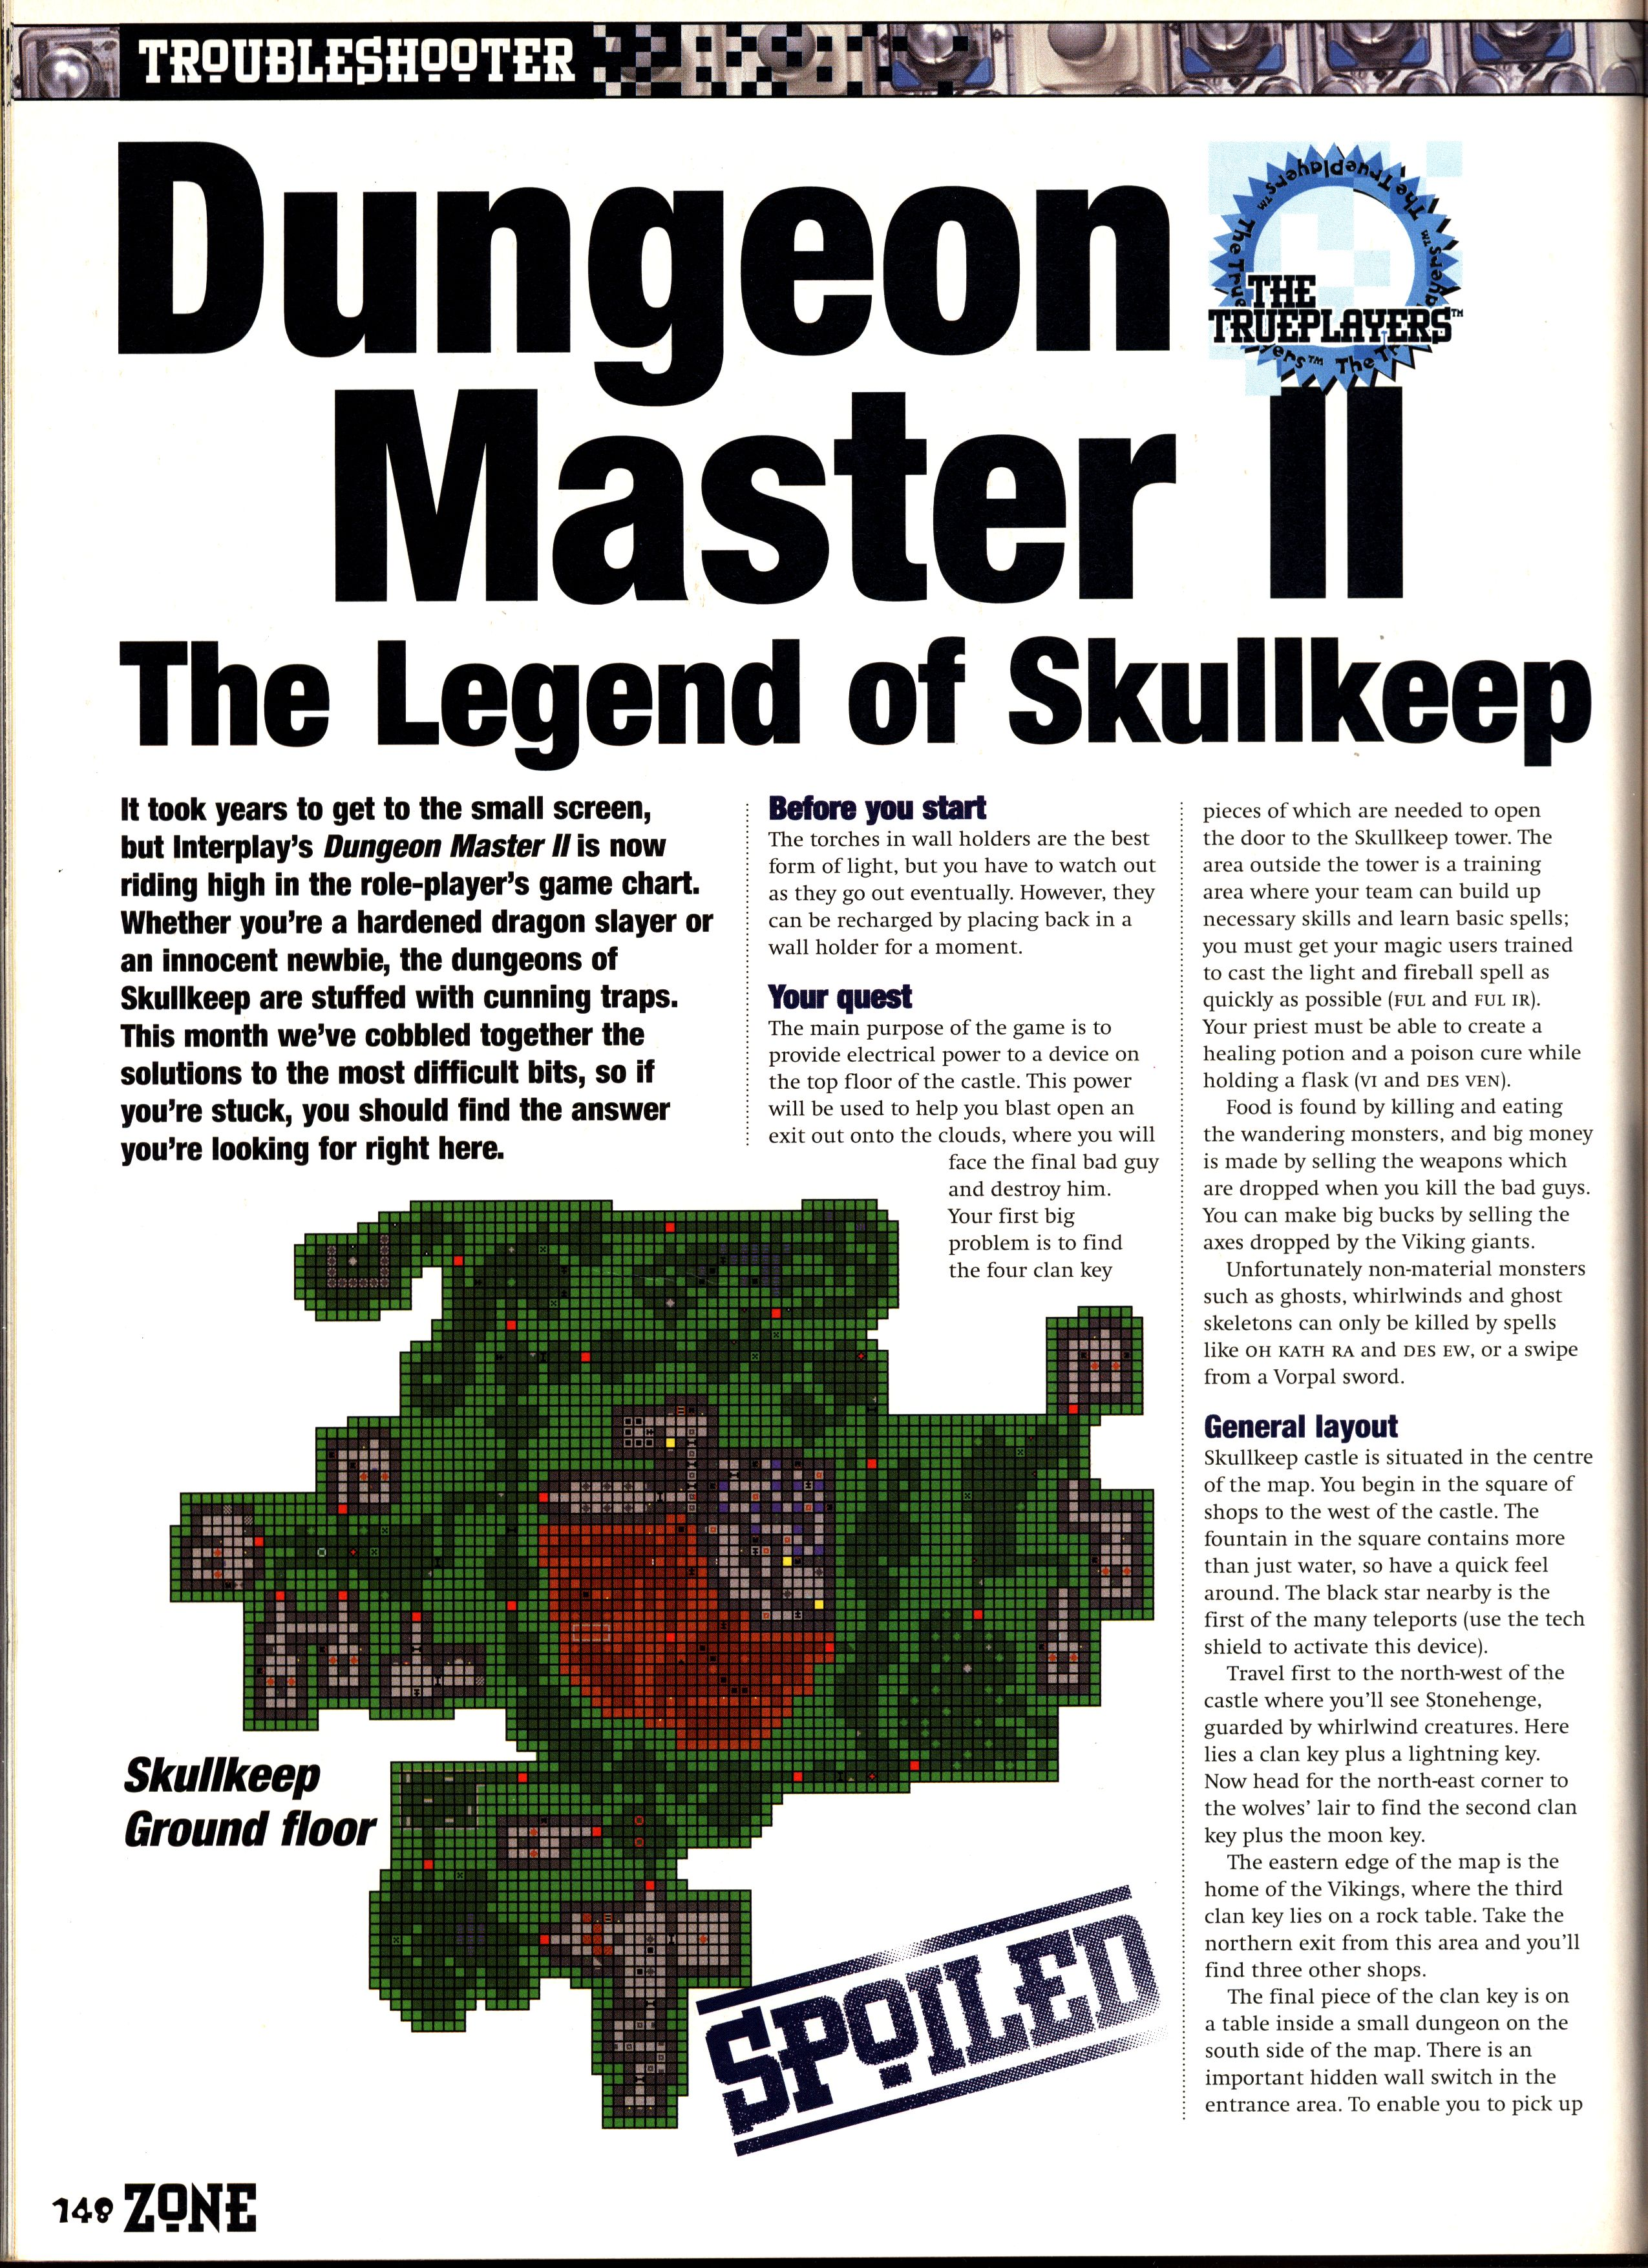 Dungeon Master II Guide published in British magazine 'PC Zone', Issue #33 December 1995, Page 148